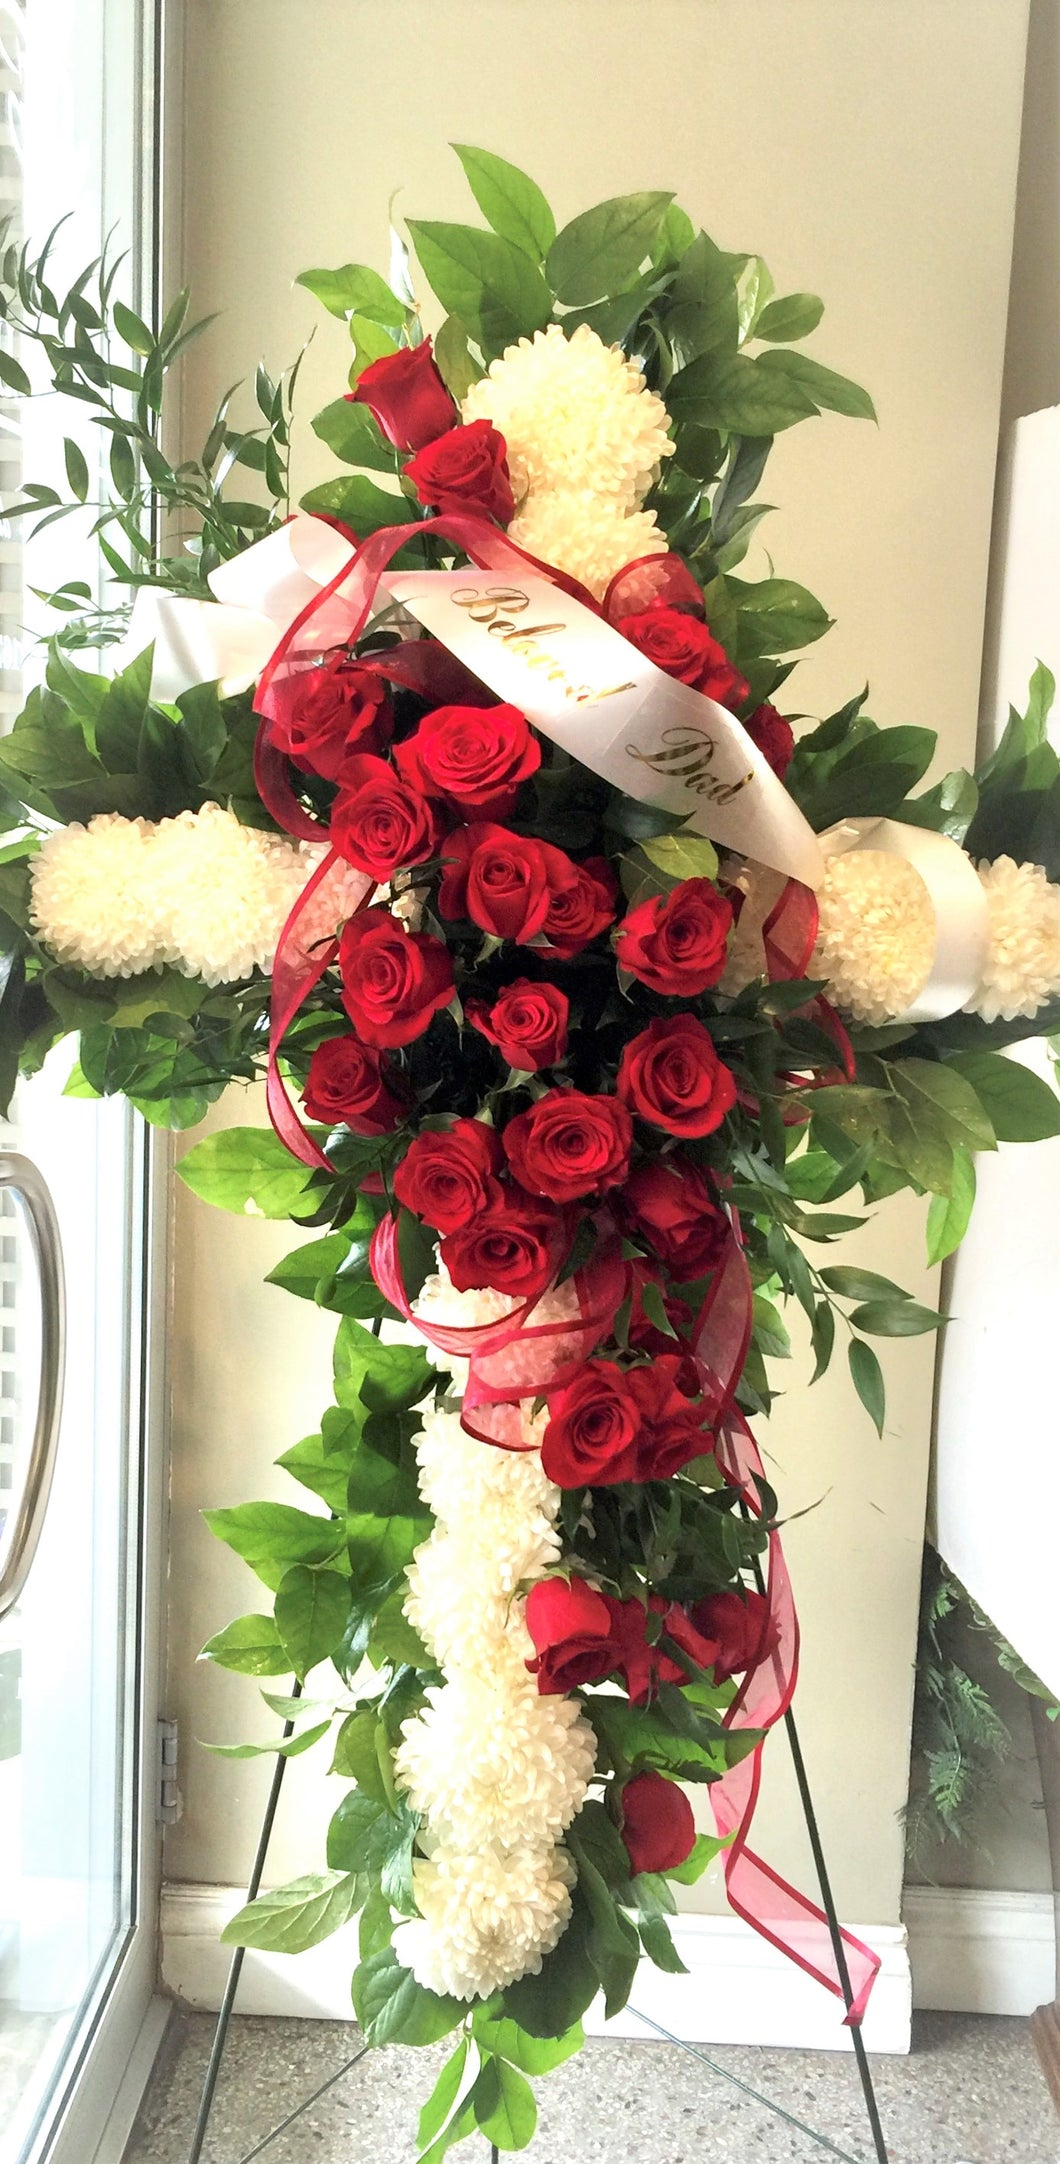 FNS5 - Cross accented with Red Roses - Flowerplustoronto